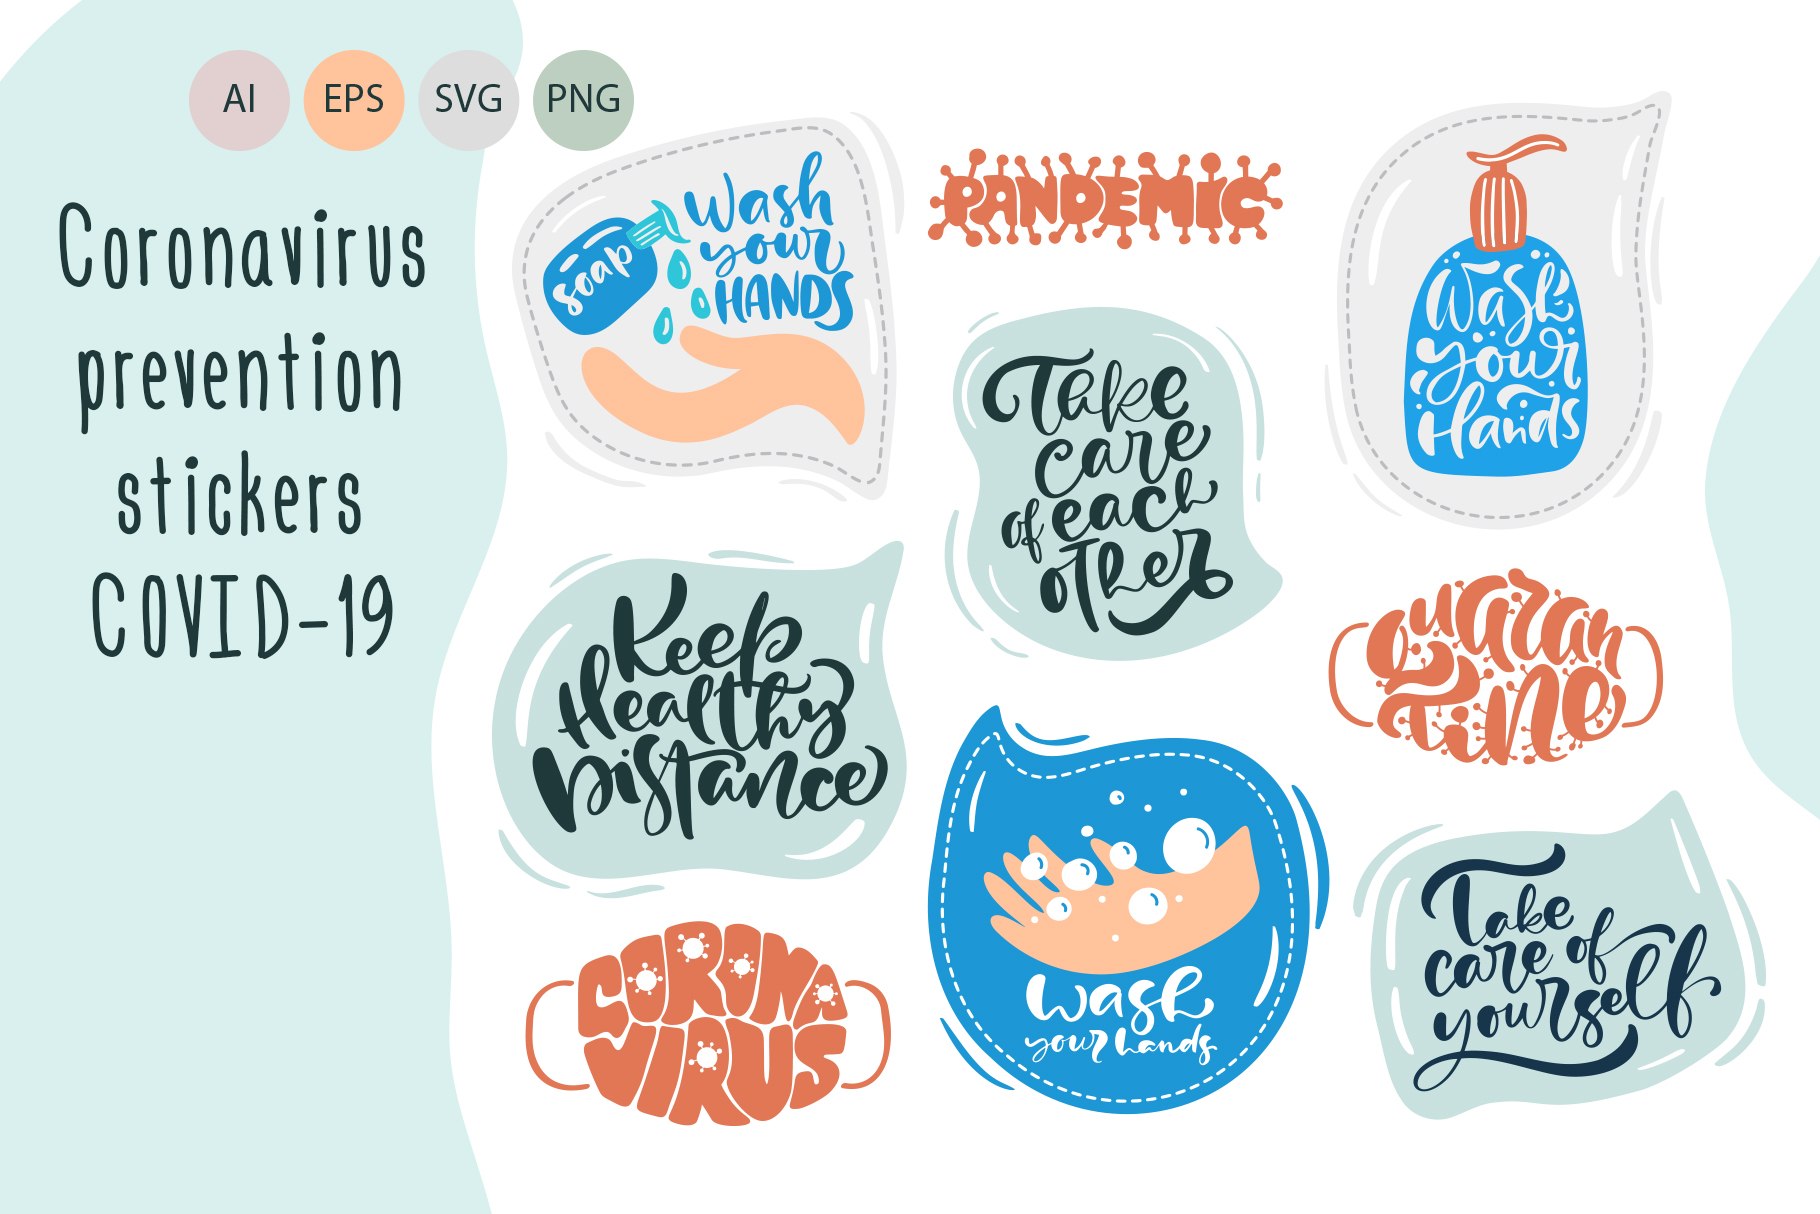 Download Free Coronavirus Prevention Stickers Graphic By Happy Letters for Cricut Explore, Silhouette and other cutting machines.